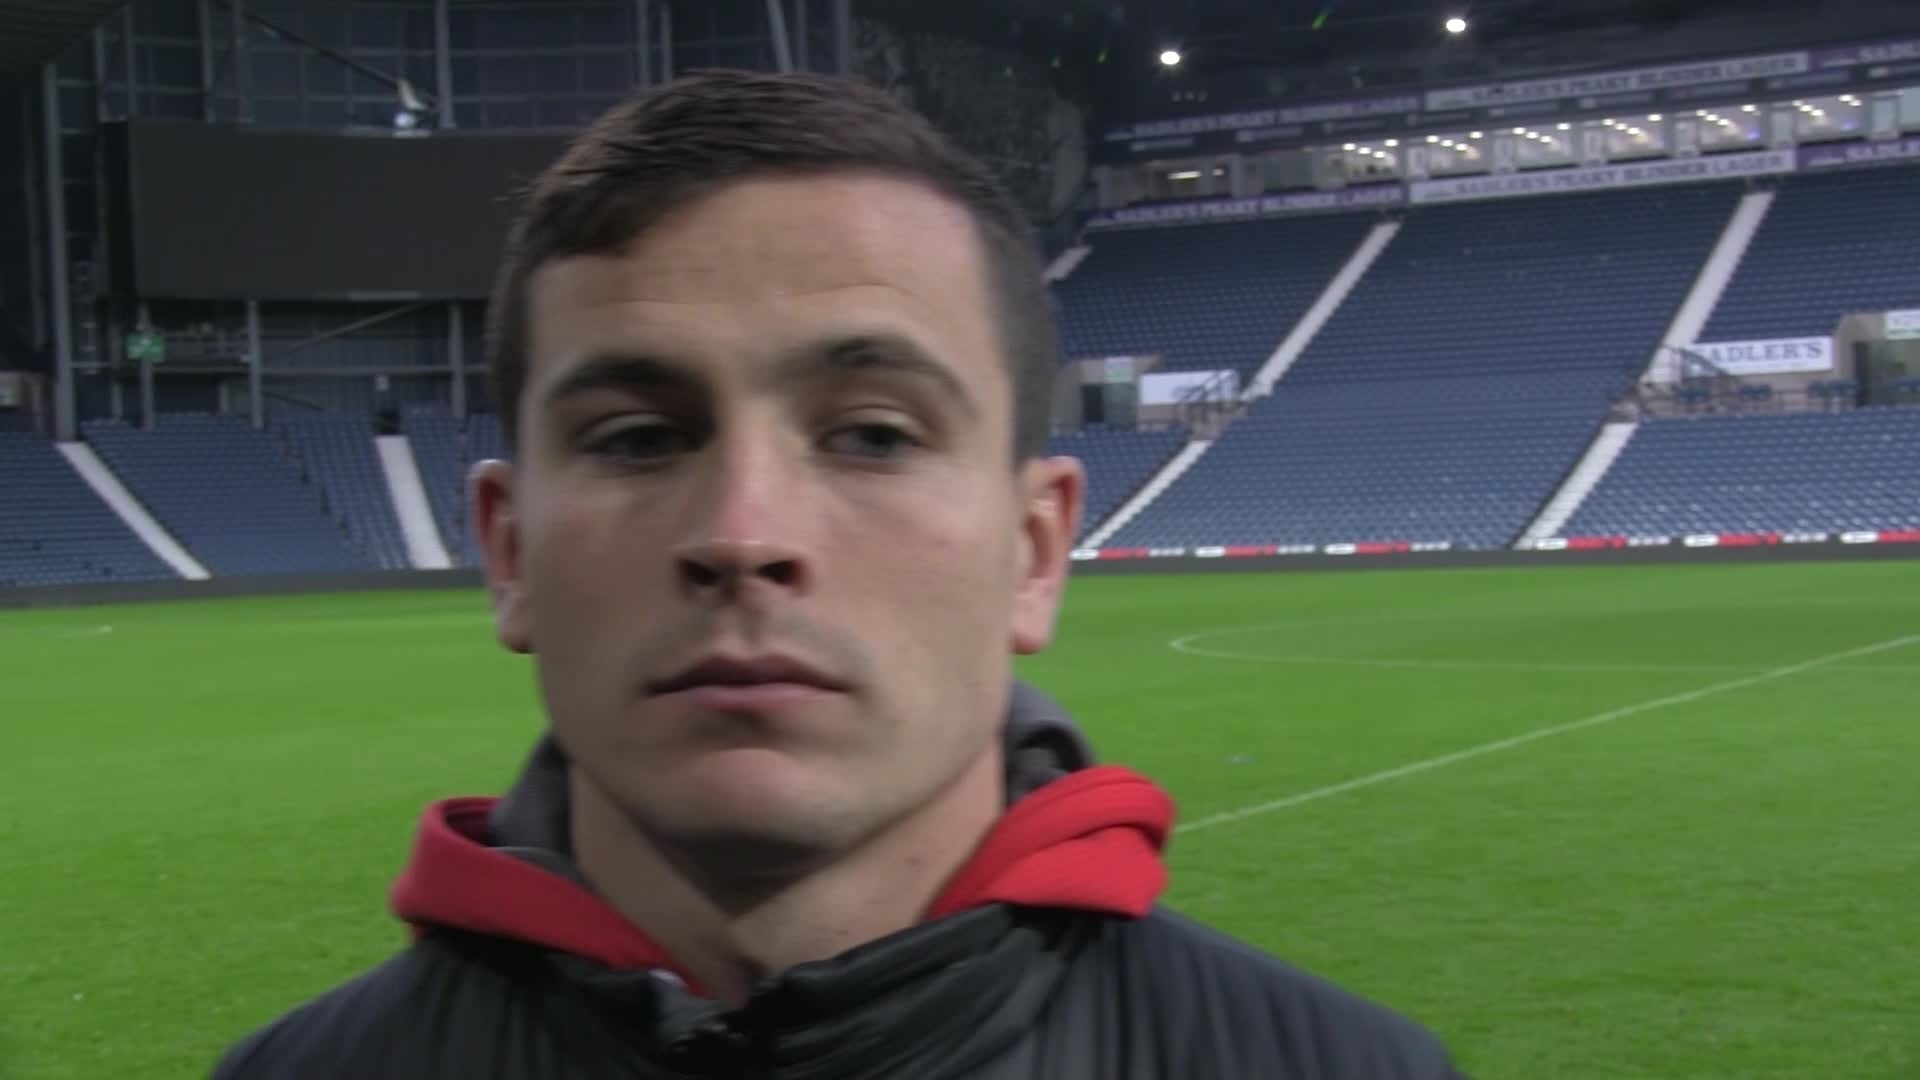 POST-MATCH | Penalty hero Cullen speaks after netting late equaliser at West Brom